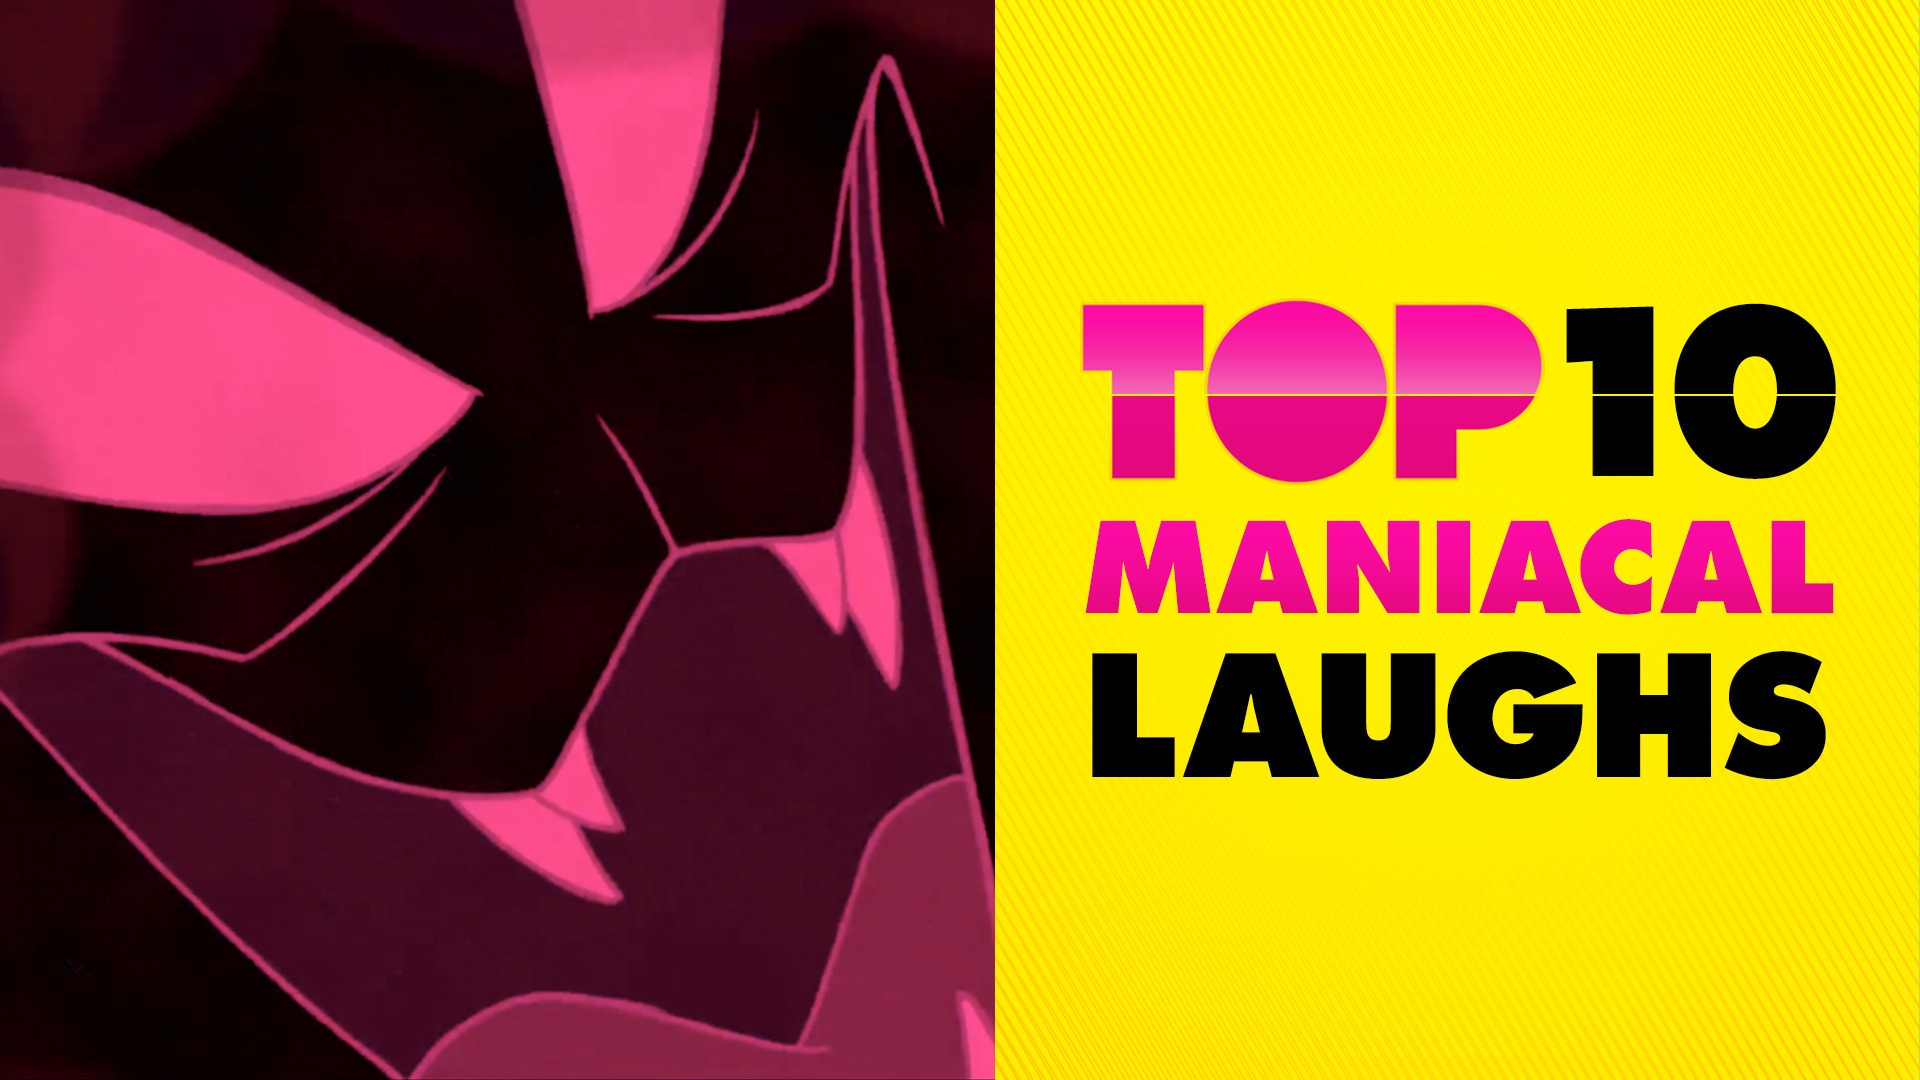 Maniacal Laughs | Disney Top 10